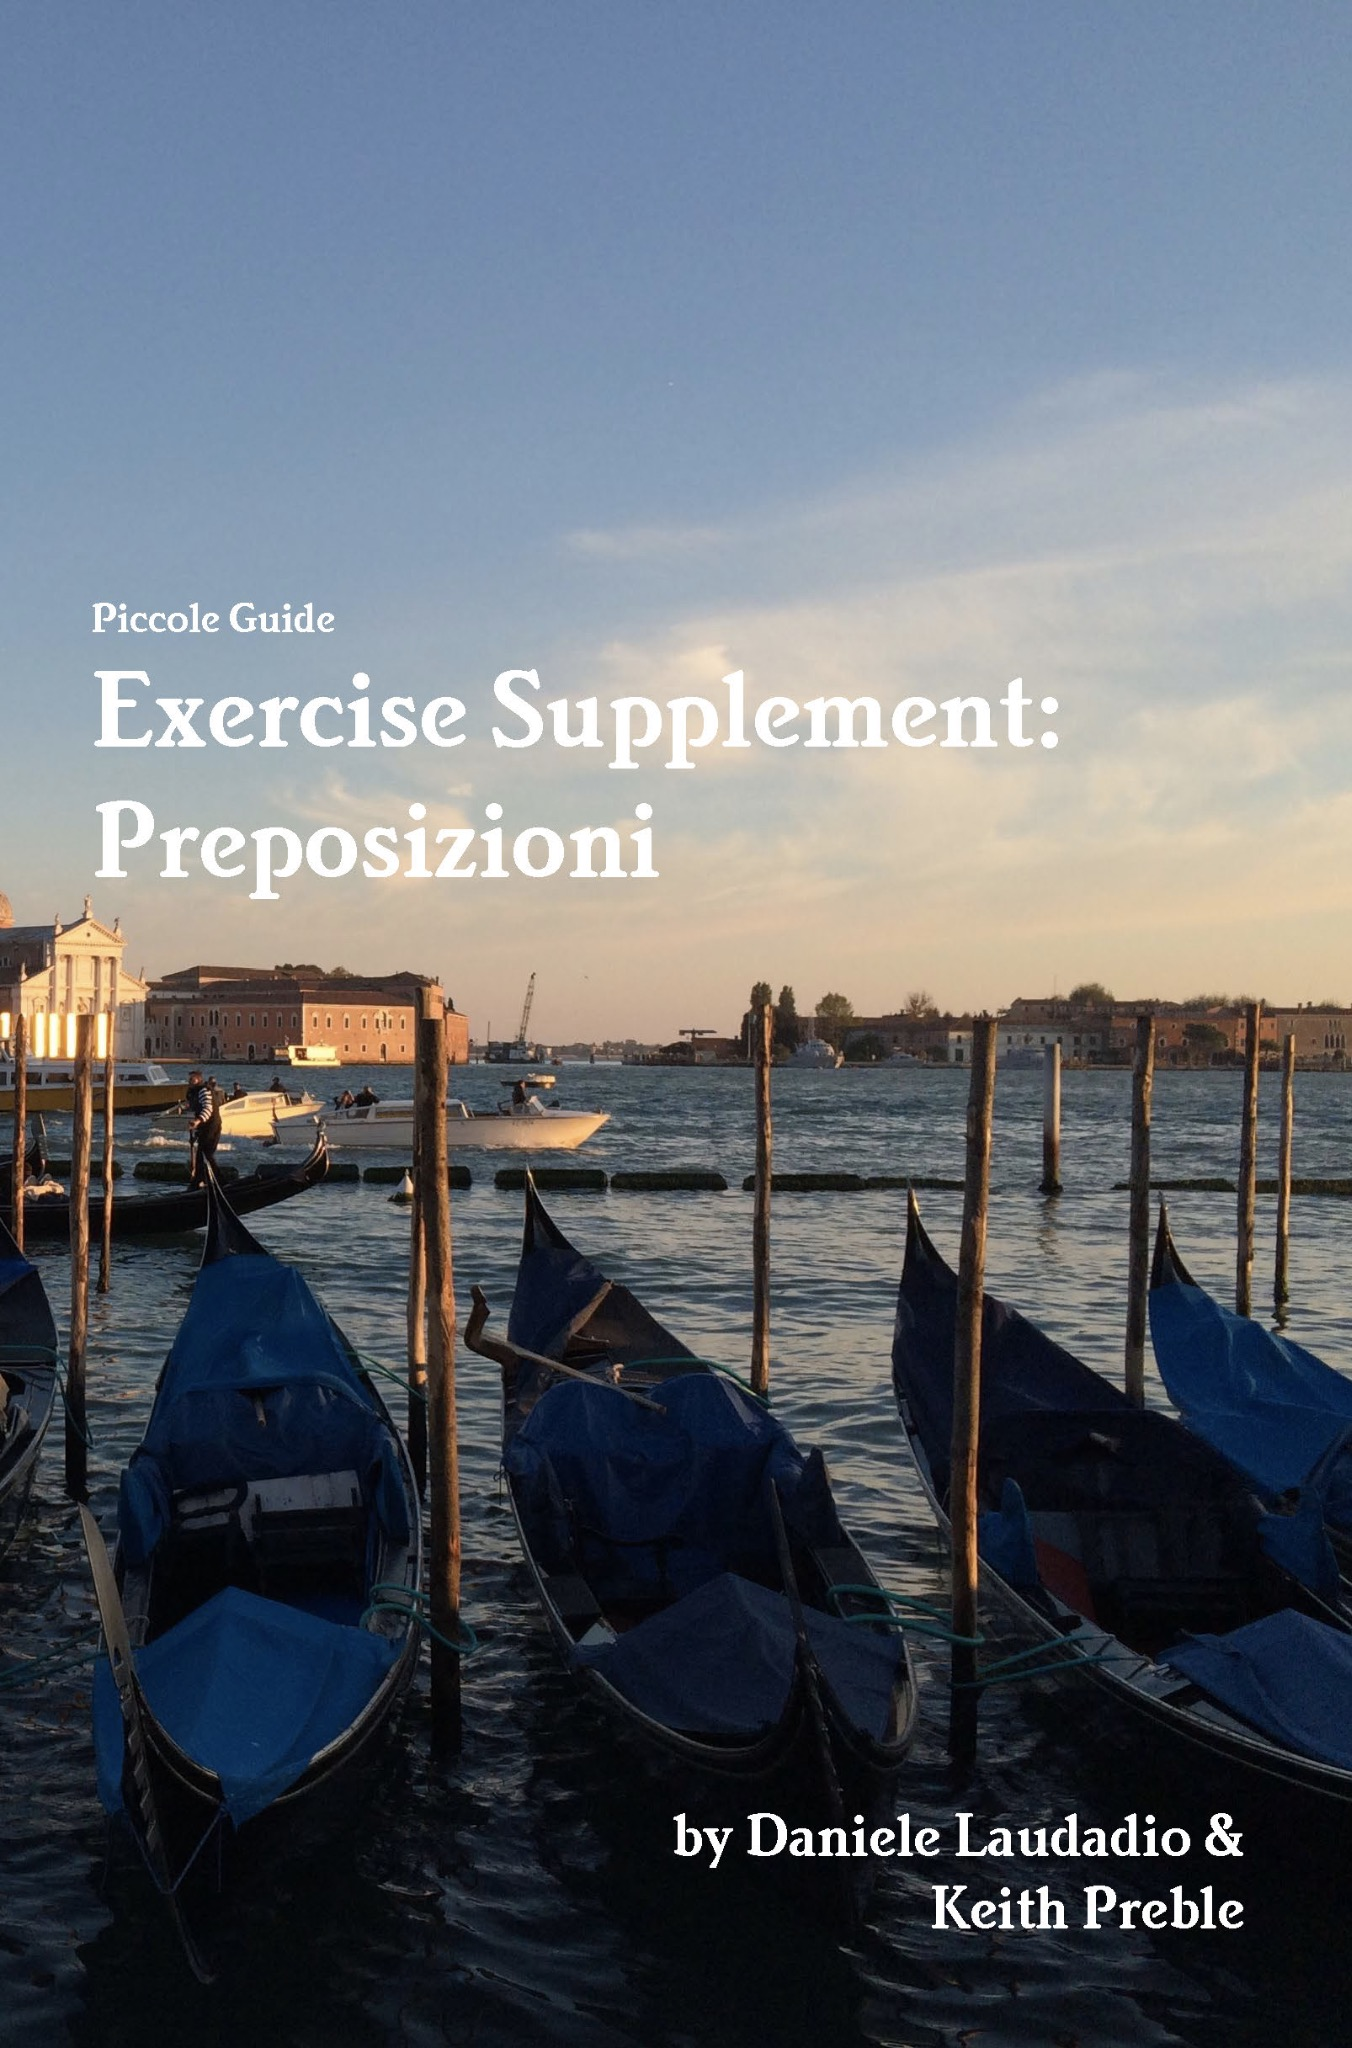 Piccole Guide (Volume 4): Exercise Supplement: Preposizioni